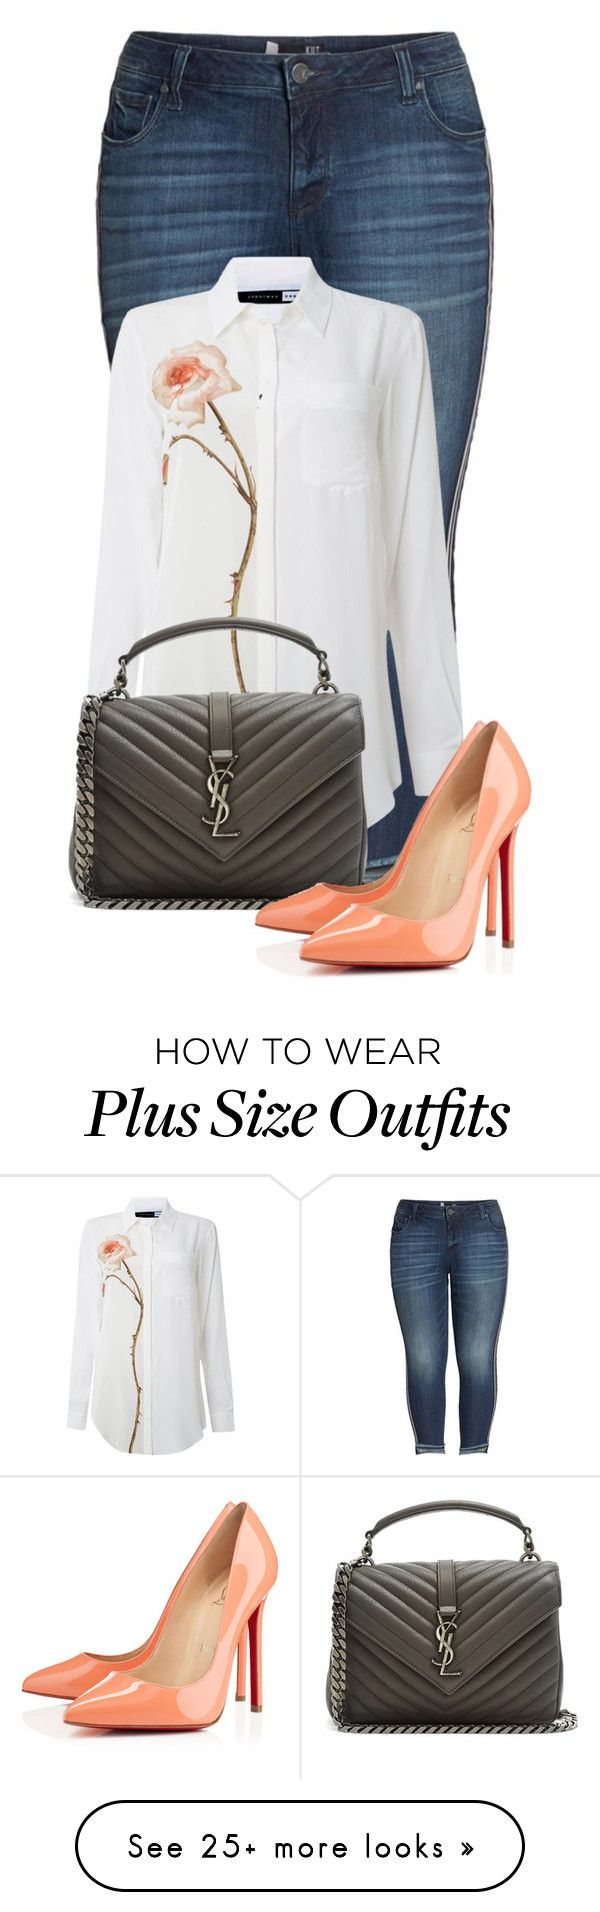 """Untitled #24732"" by nanette-253 on Polyvore featuring KUT from the Kloth, Sportmax, Yves Saint Laurent and Christian Louboutin"